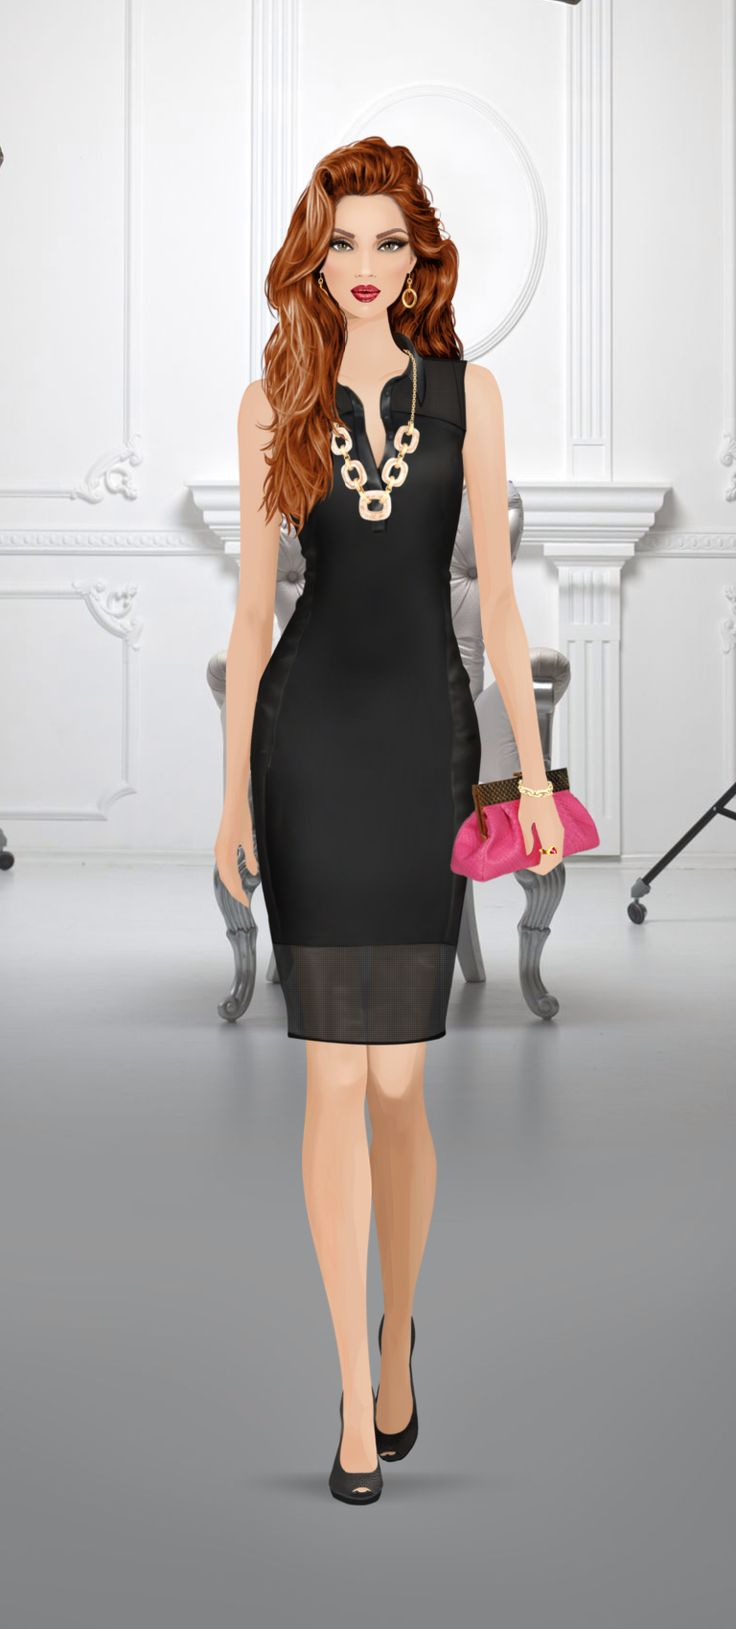 Fashion, Game